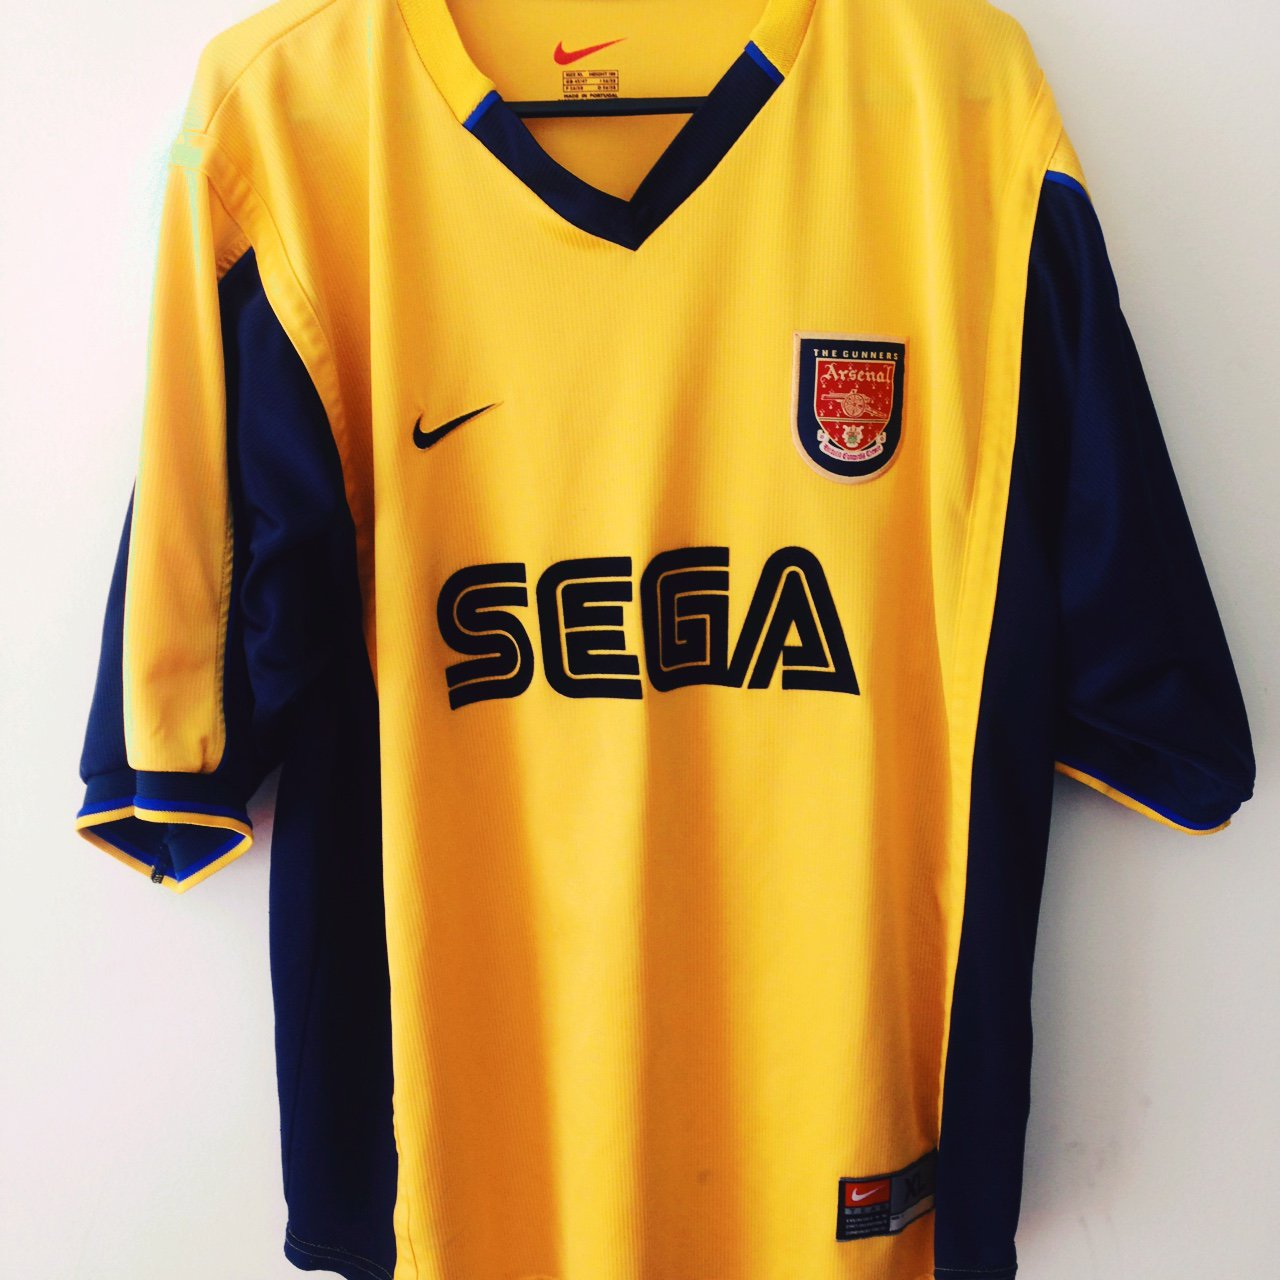 Arsenal 2000 Sega Dreamcast away soccer jersey. One of the I - Depop 211eed229